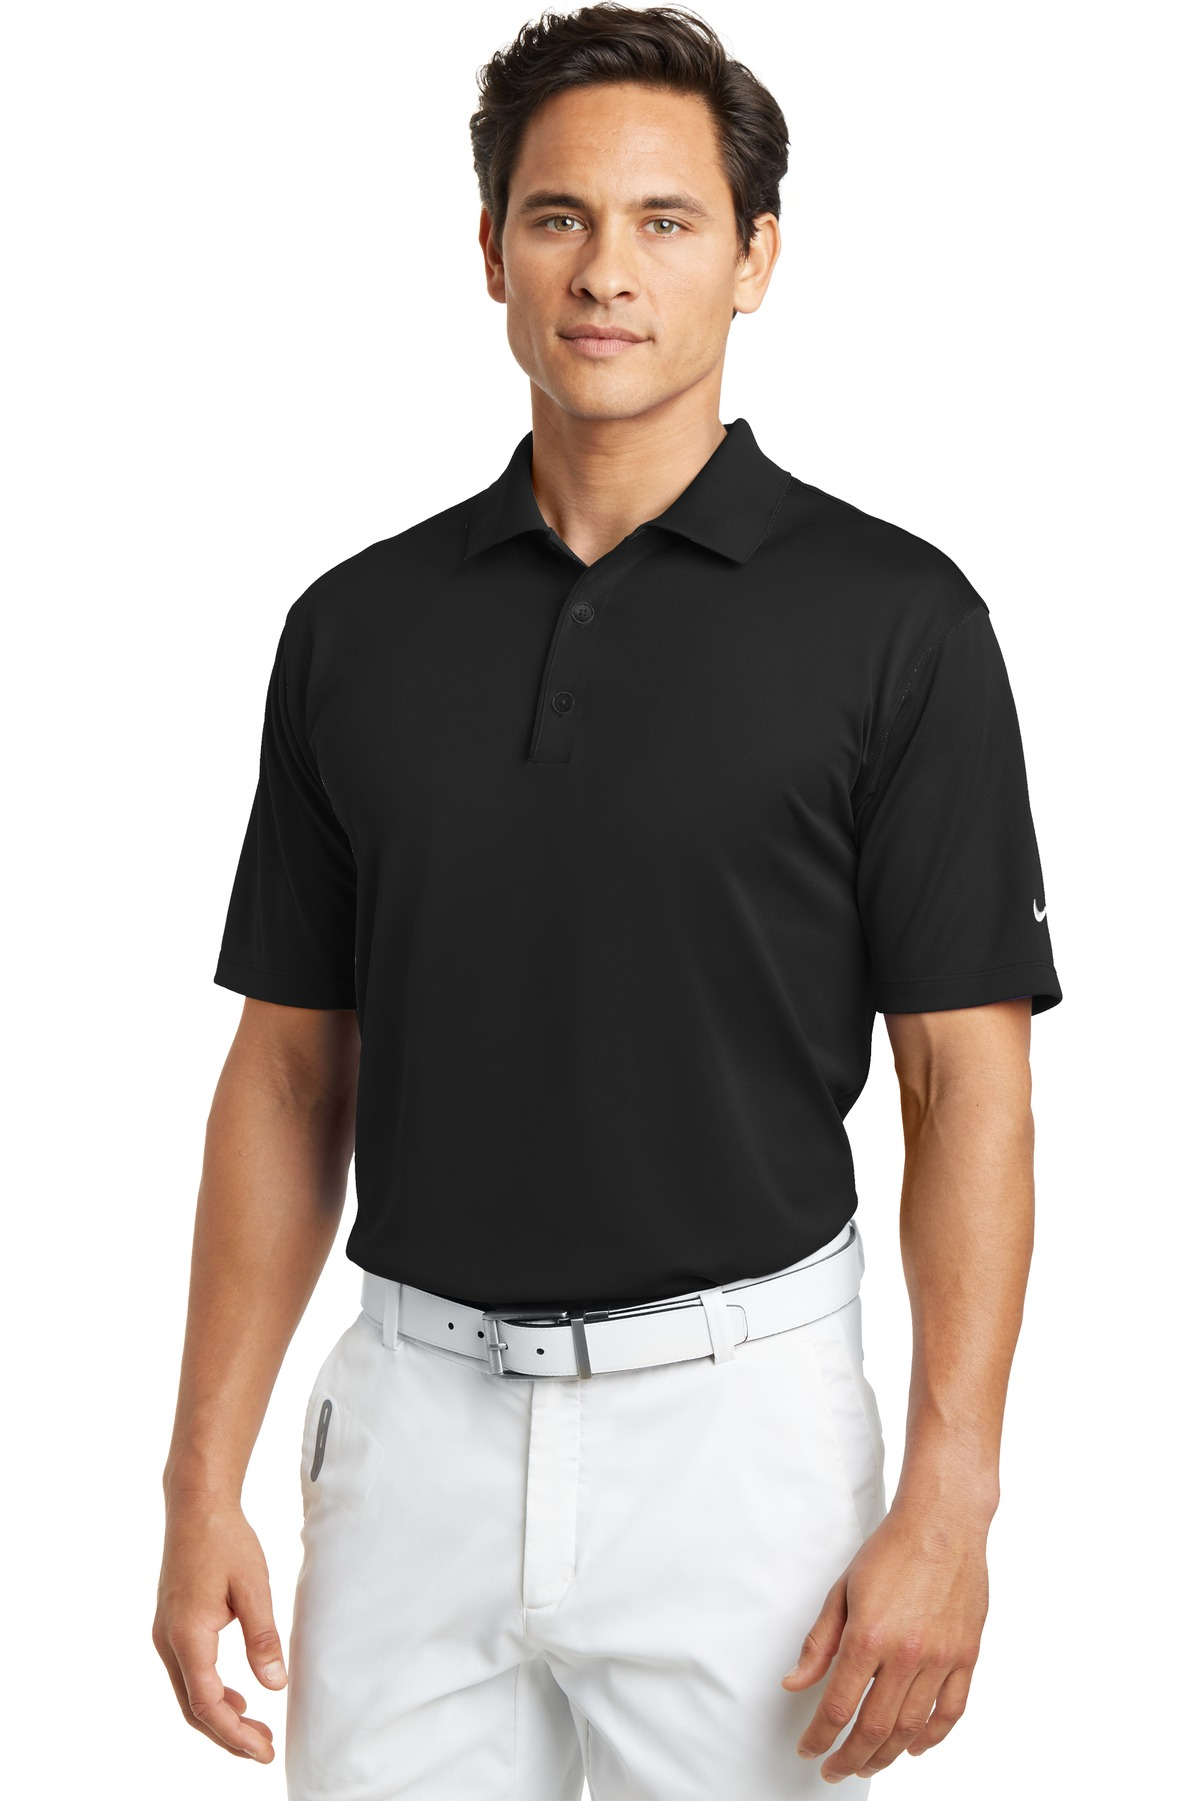 Nike Tech Basic Dri-FIT Polo.  203690 - Black